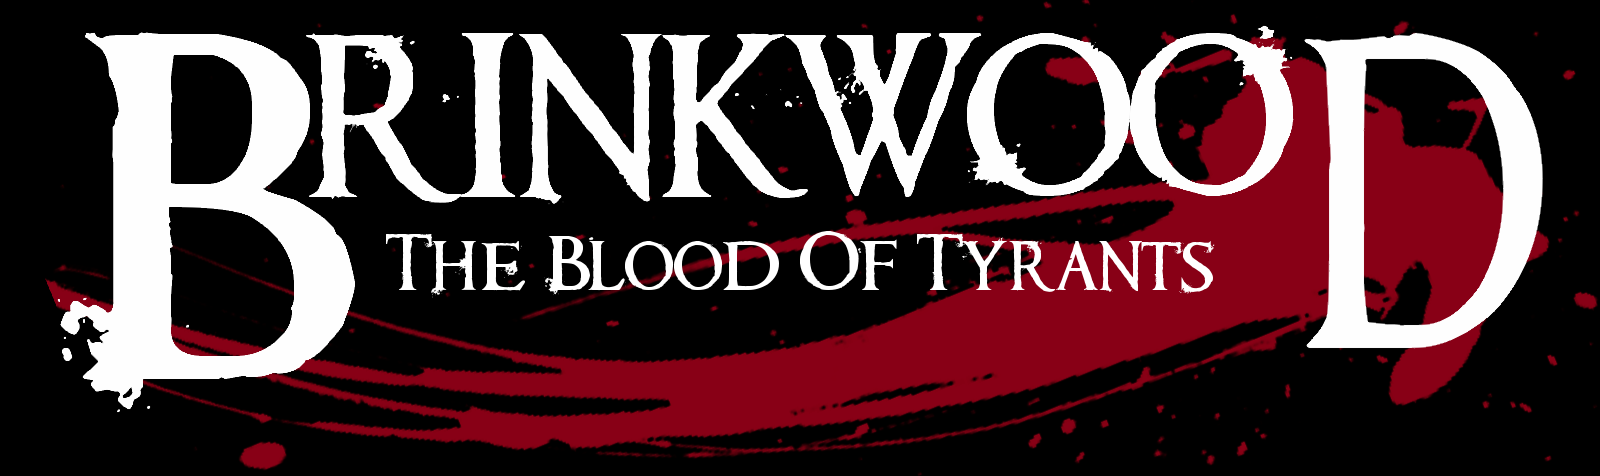 Brinkwood - The Blood of Tyrants - Playtest Kit